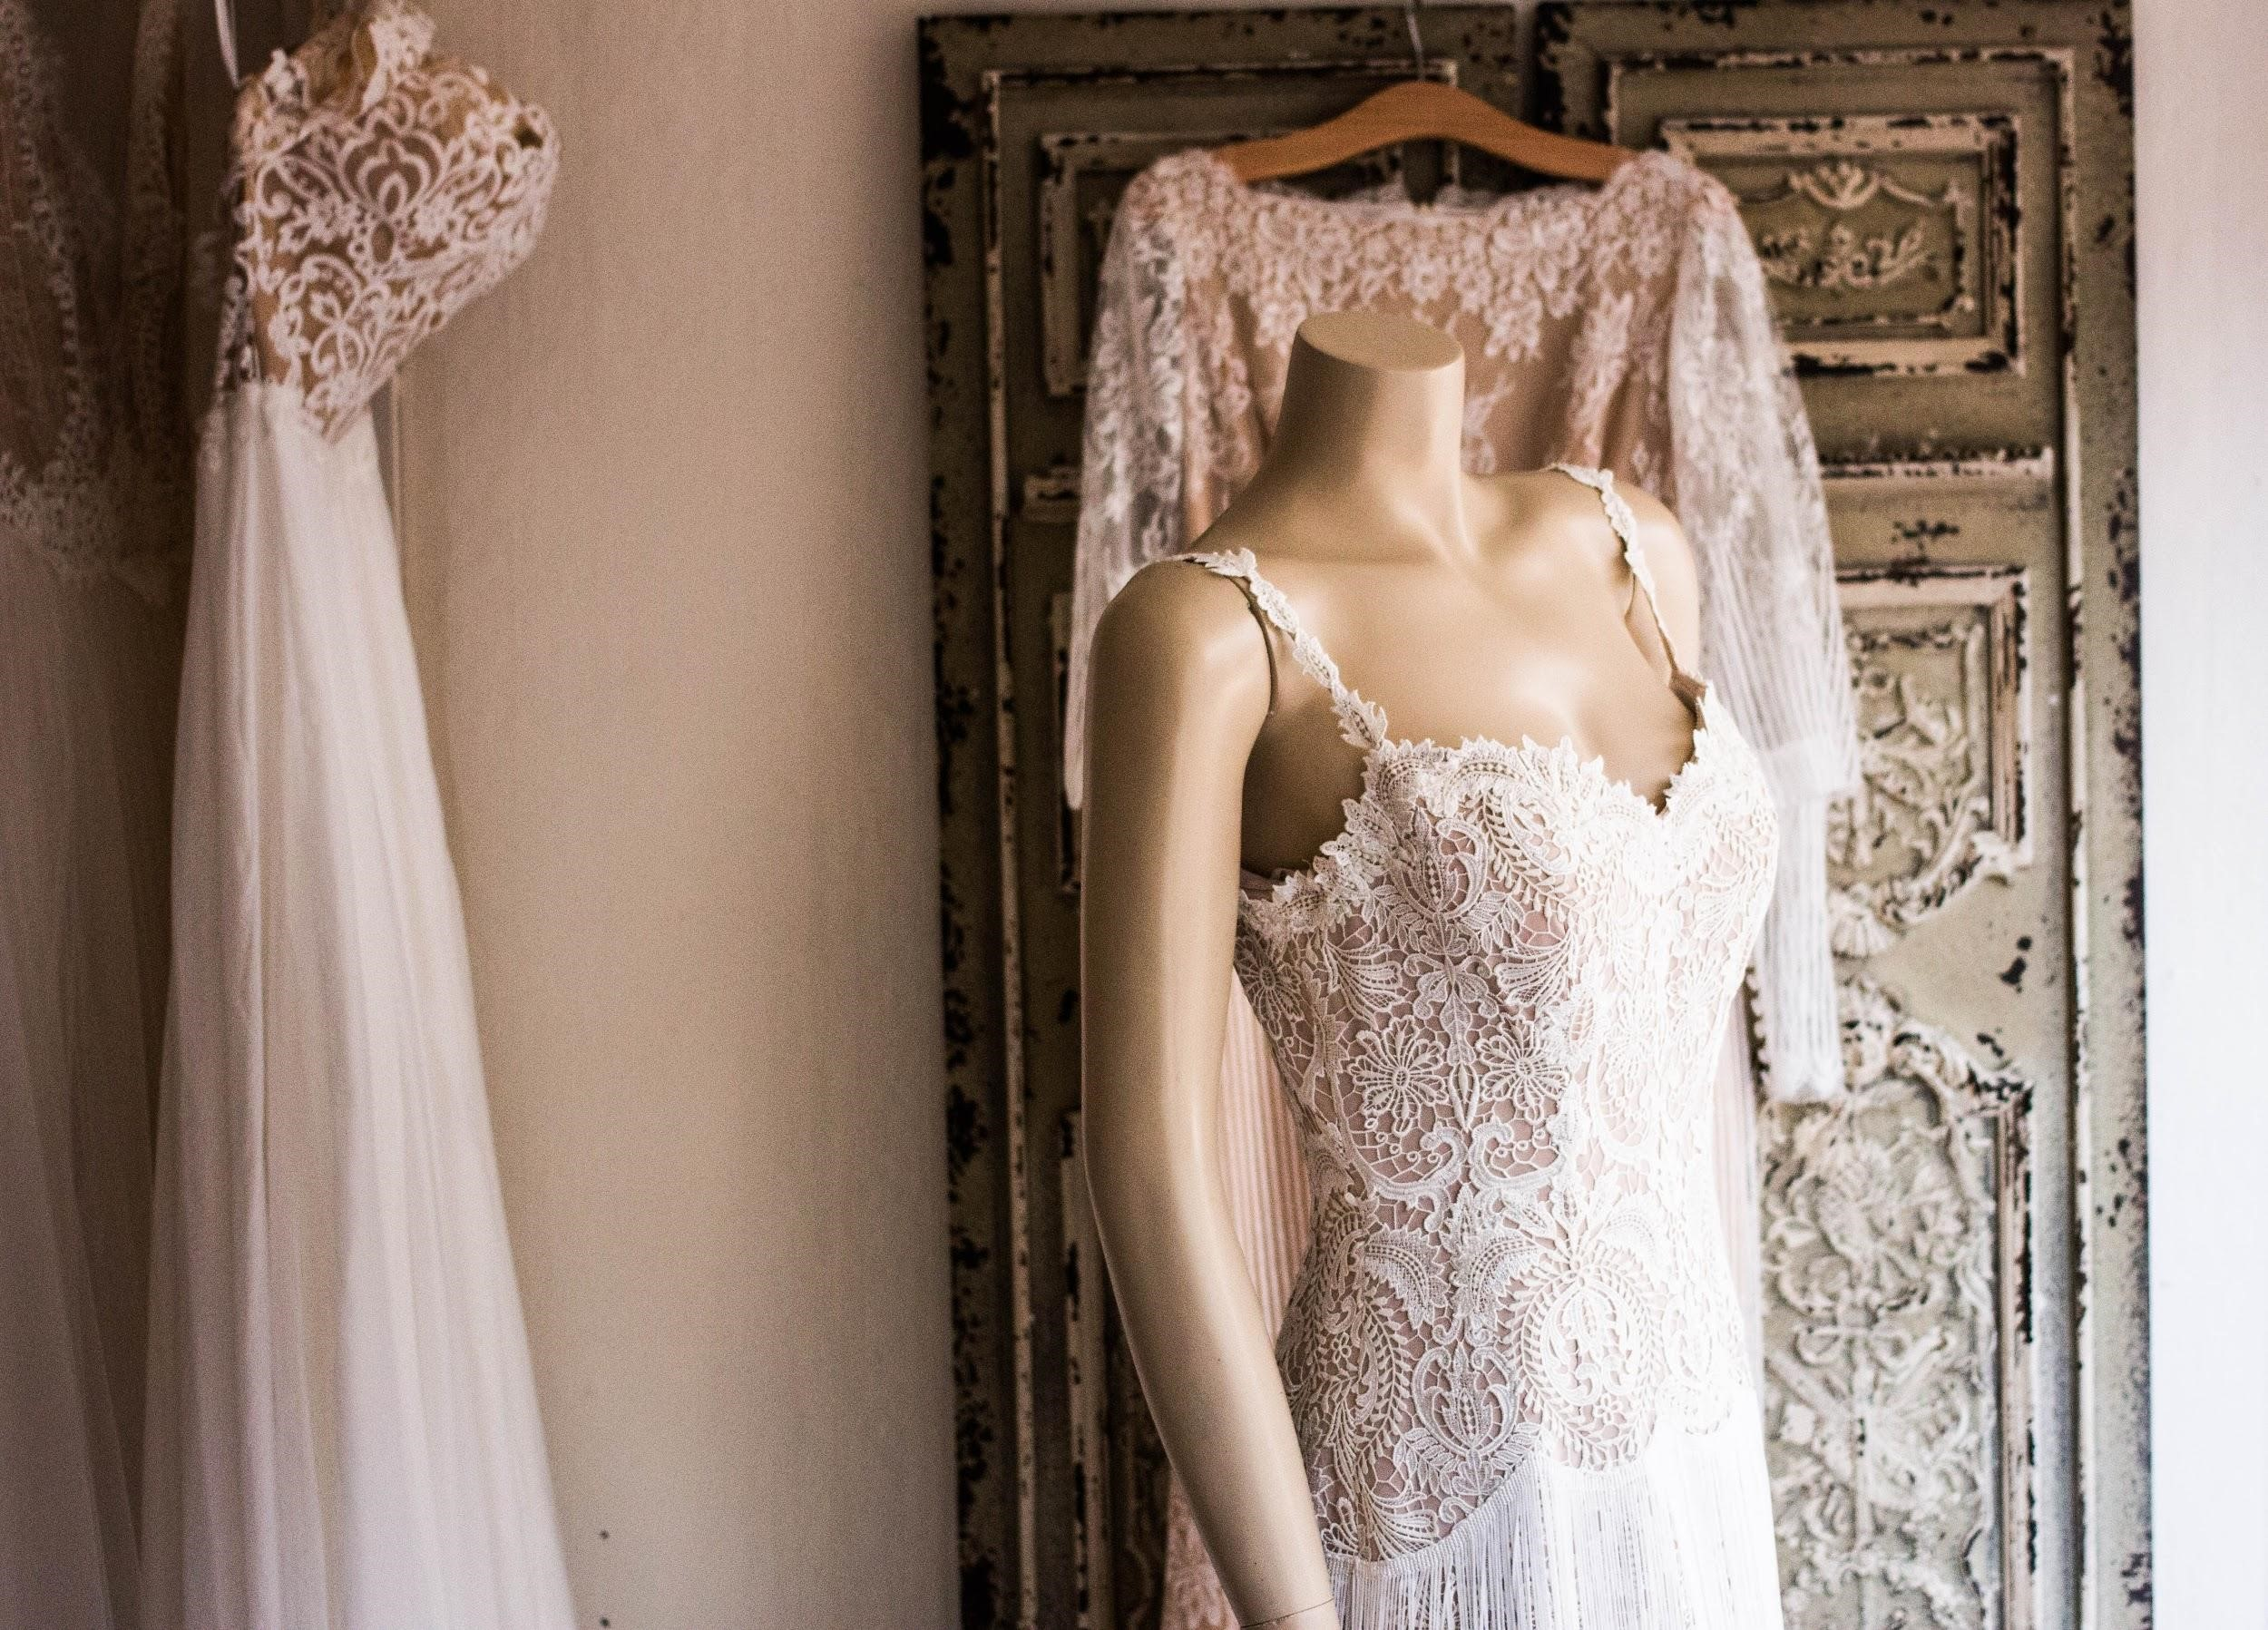 MannequinGets Fitted for Bridal Gown